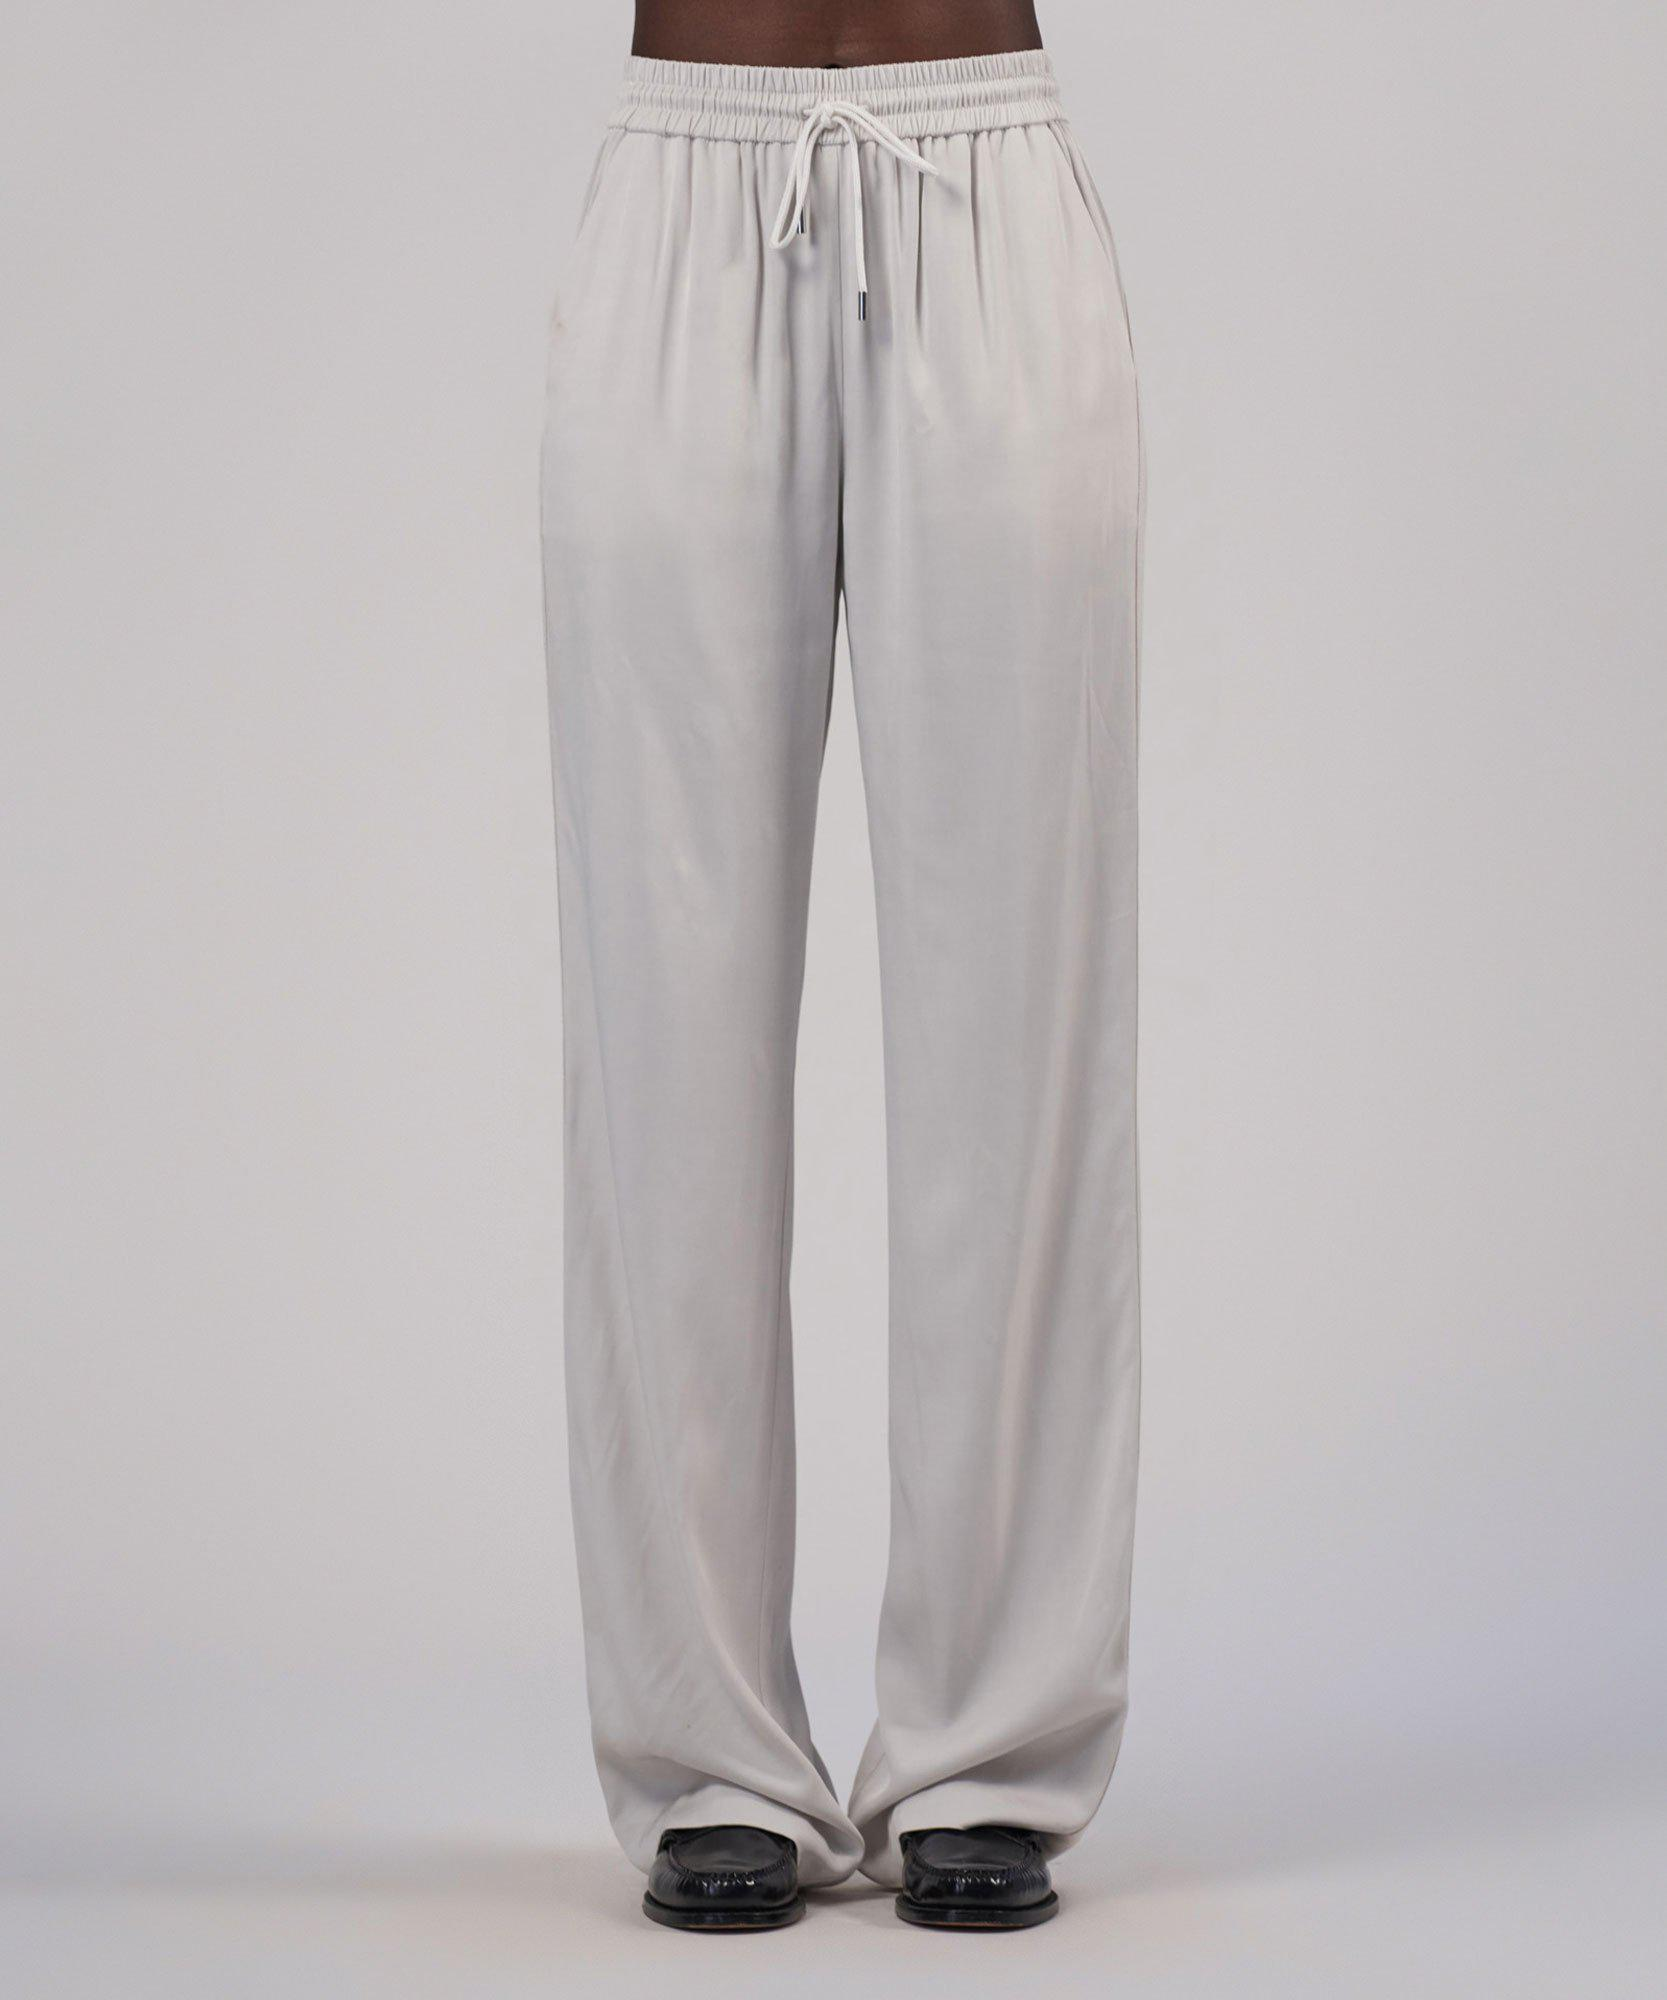 Viscose Twill Wide Leg Pull-On Pant - Gesso 4